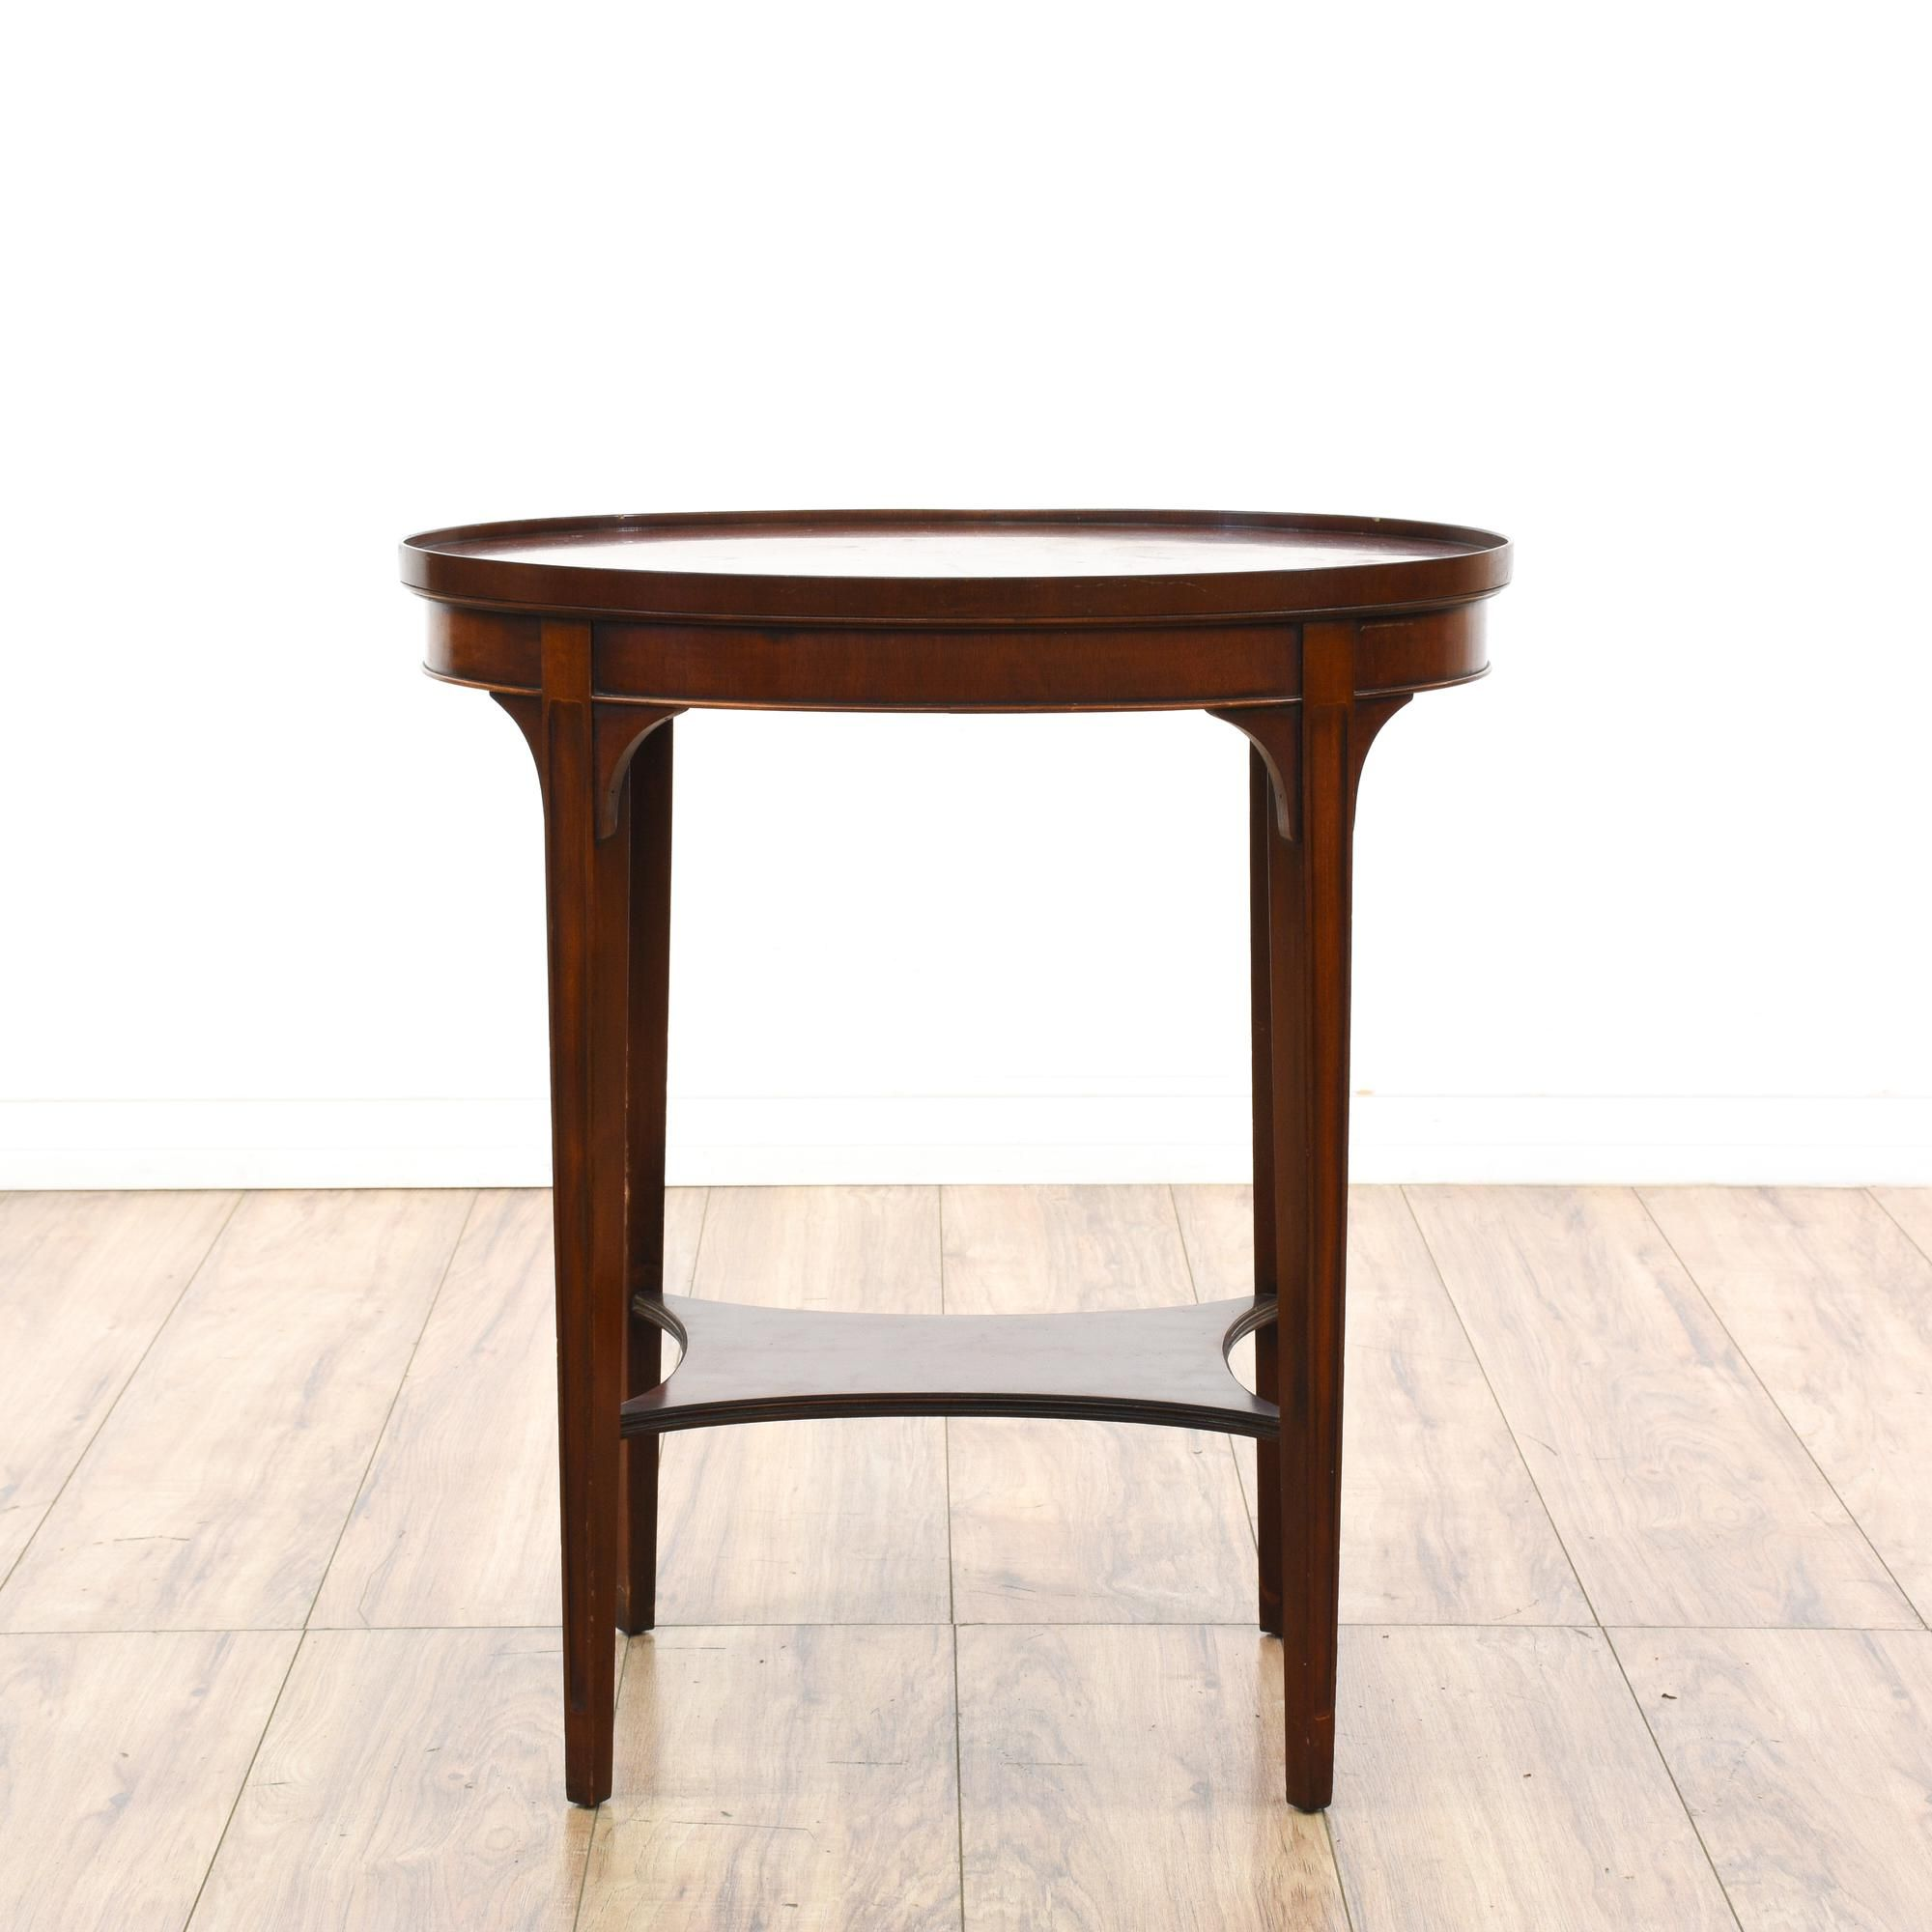 Furniture Legs San Diego oval mahogany end table | furniture san diego, tables and vintage